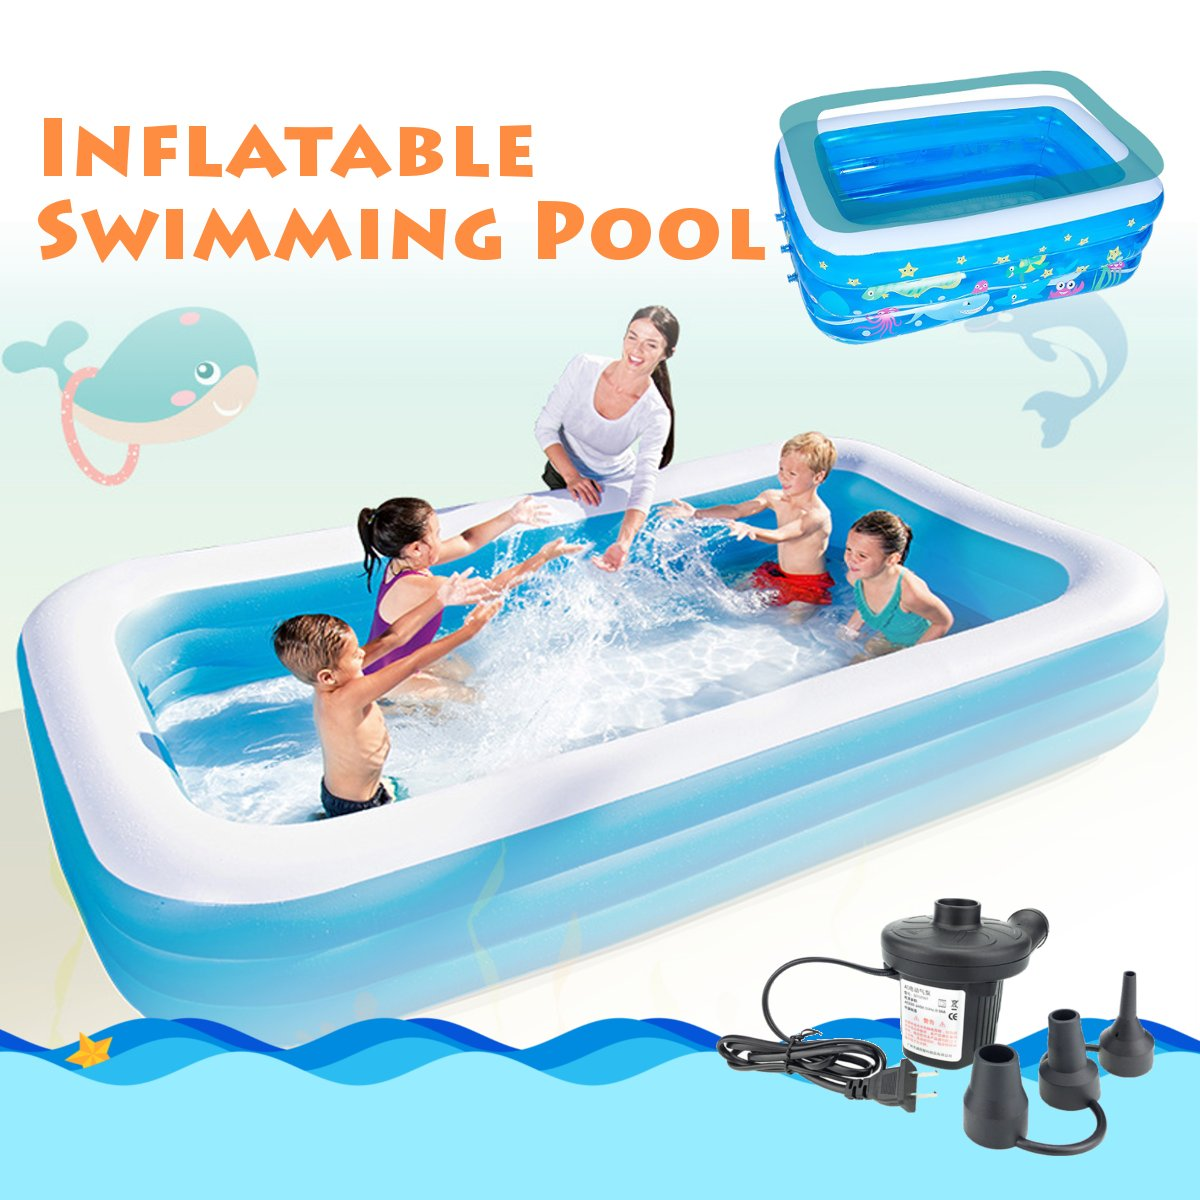 Inflatable Swimming Pool Family Childrens Kids Baby Large Water Rectangular Fun Inflatable Pool Large Water Play Center